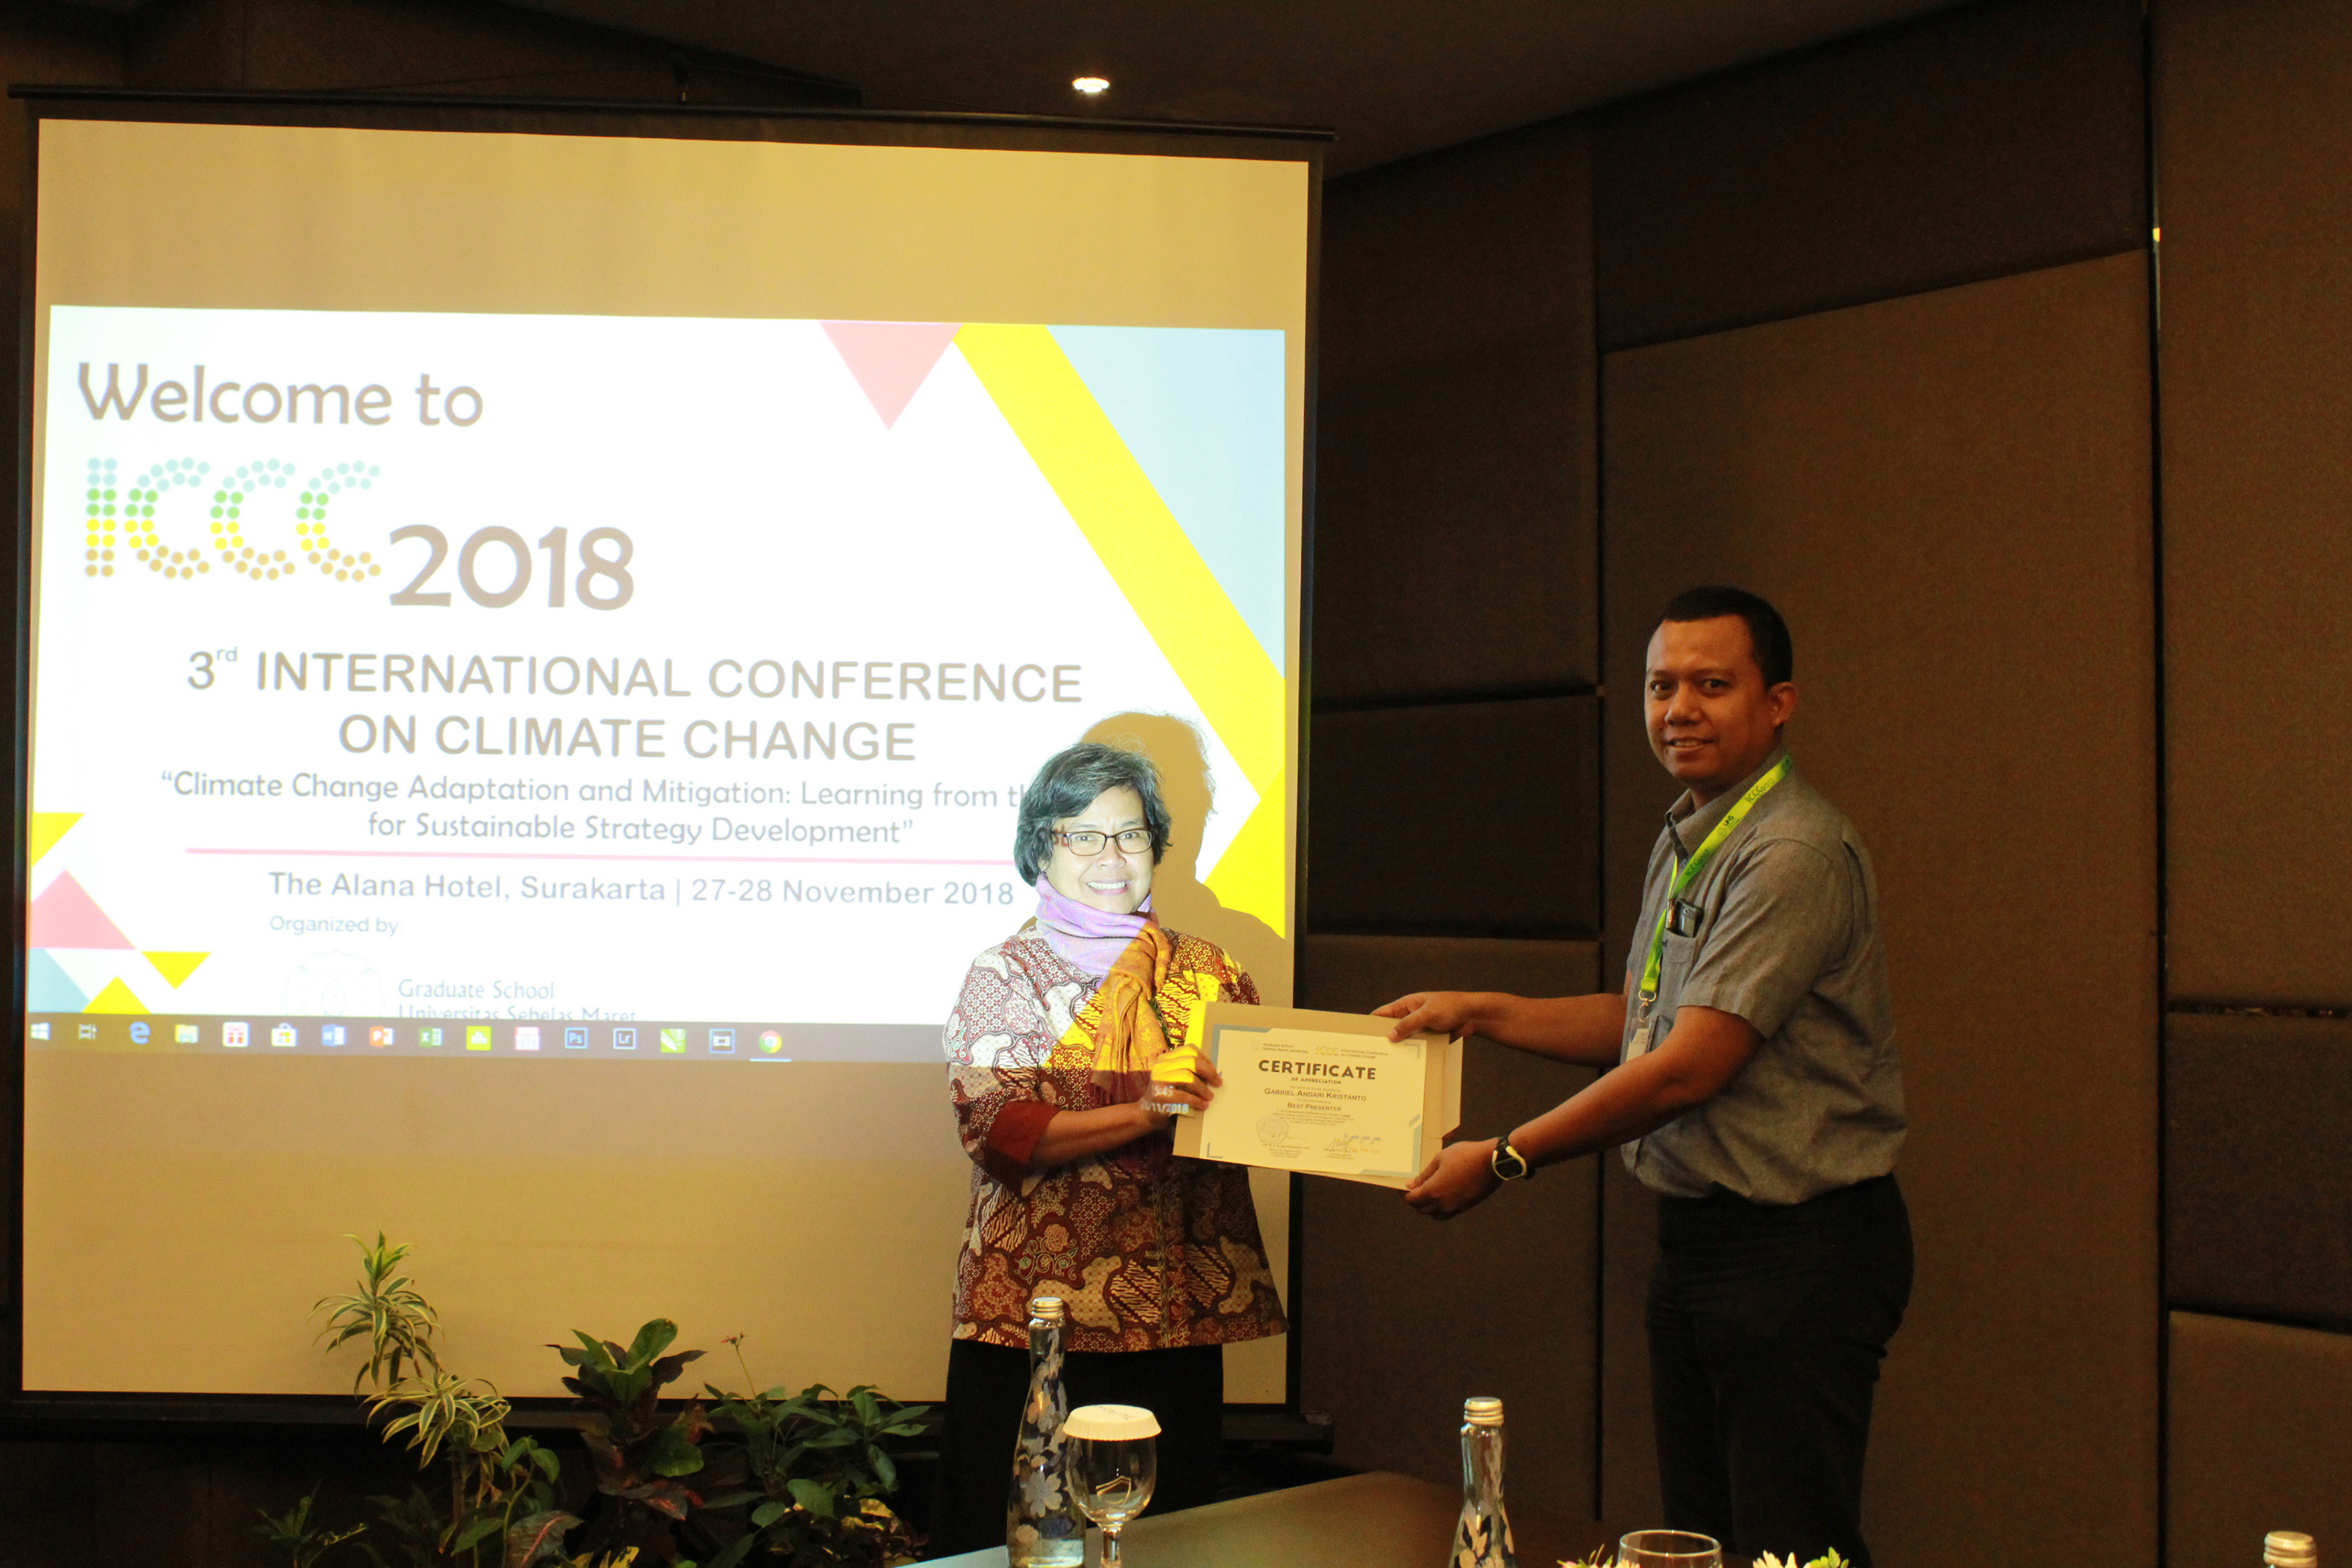 Best Presenter Award Room 2 (Dr. Gabriel Andari Kristanto)